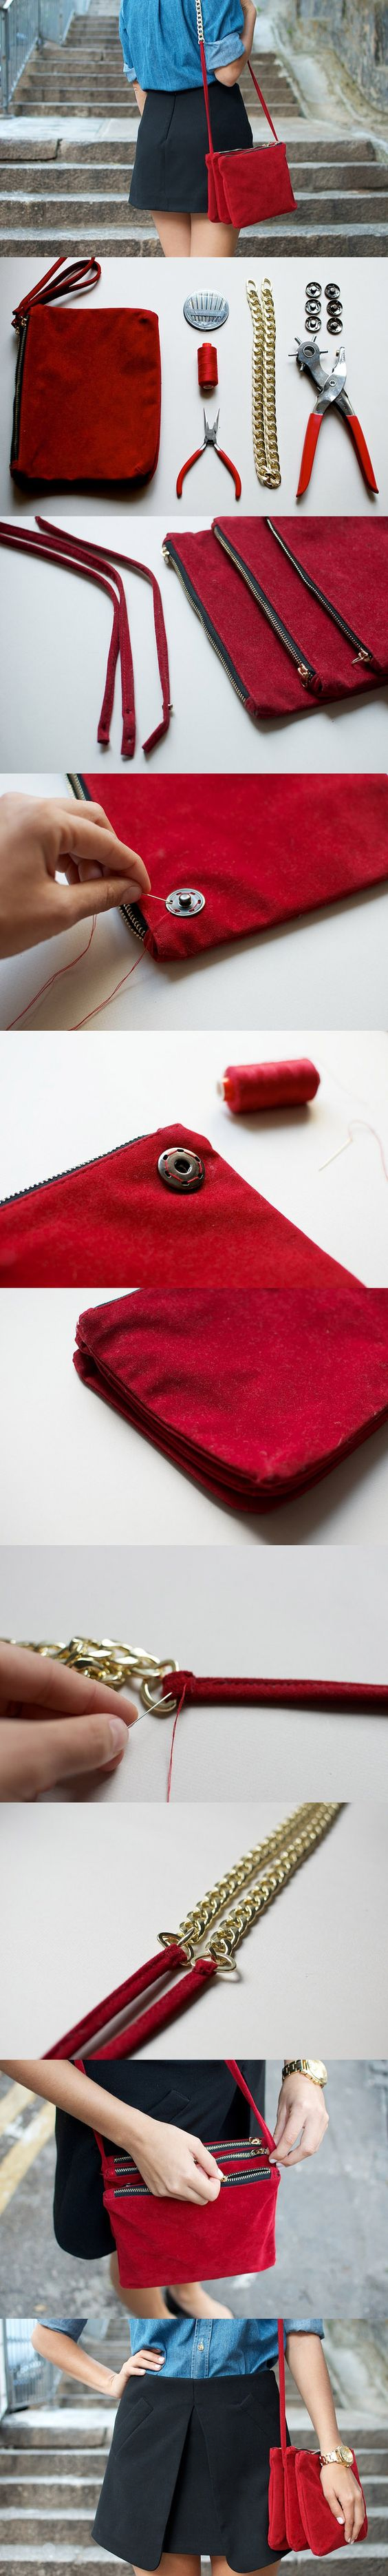 Amazingly Effortless to Make DIY Fashion Projects